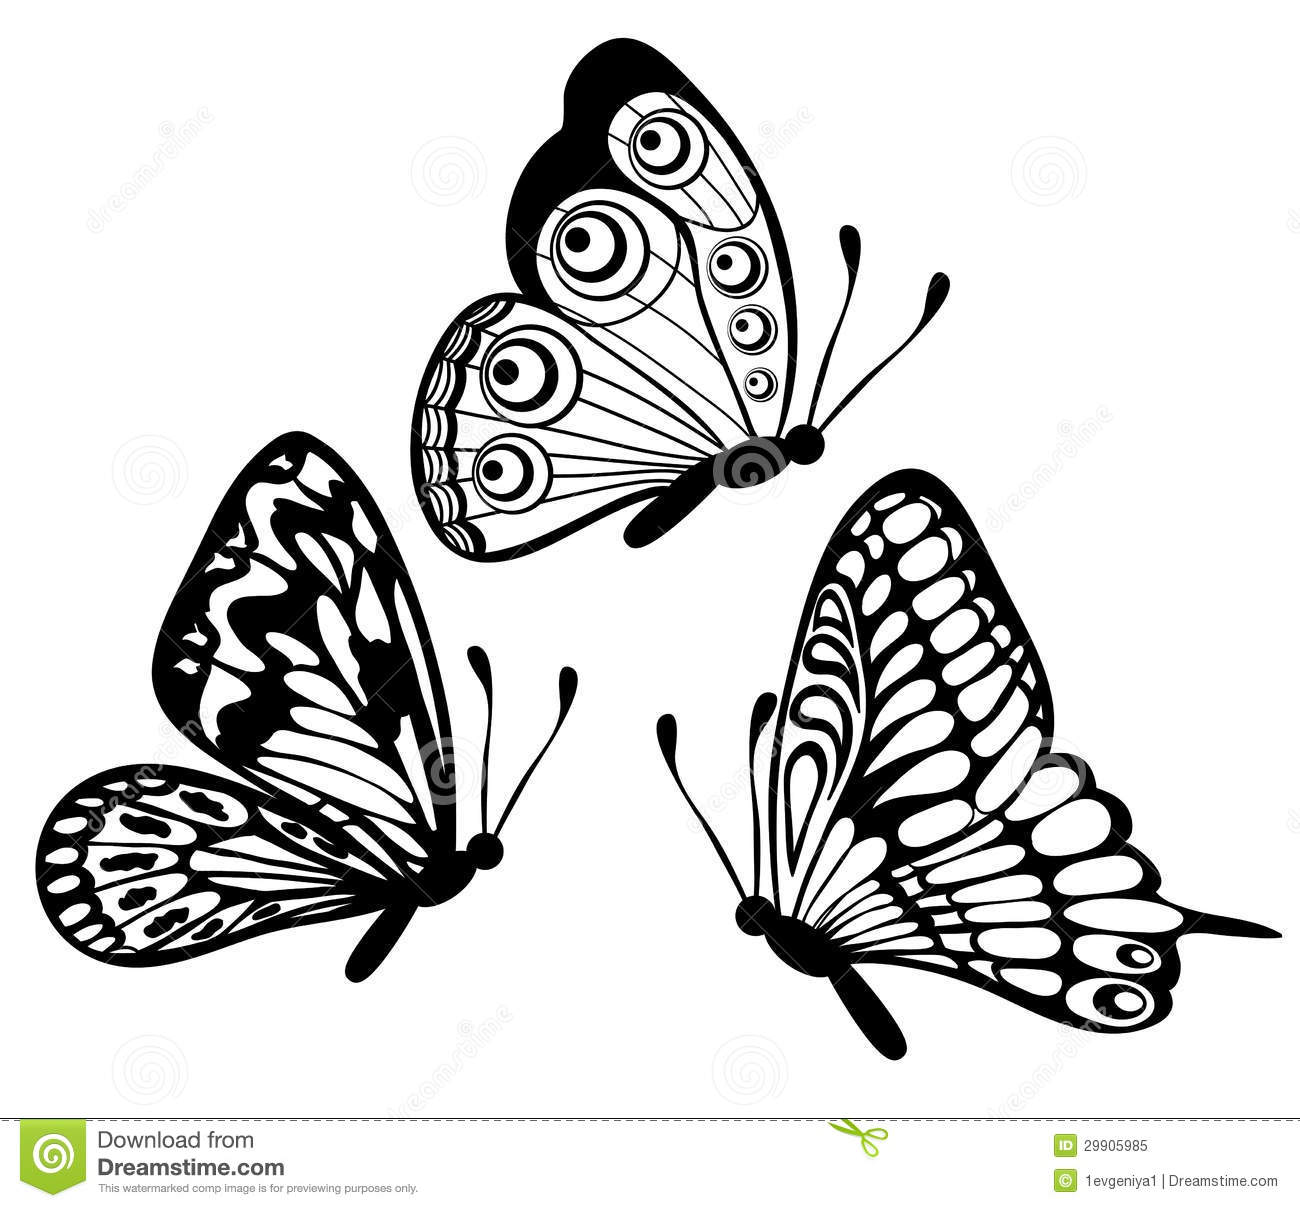 Set of black and white butterfly stock vector illustration